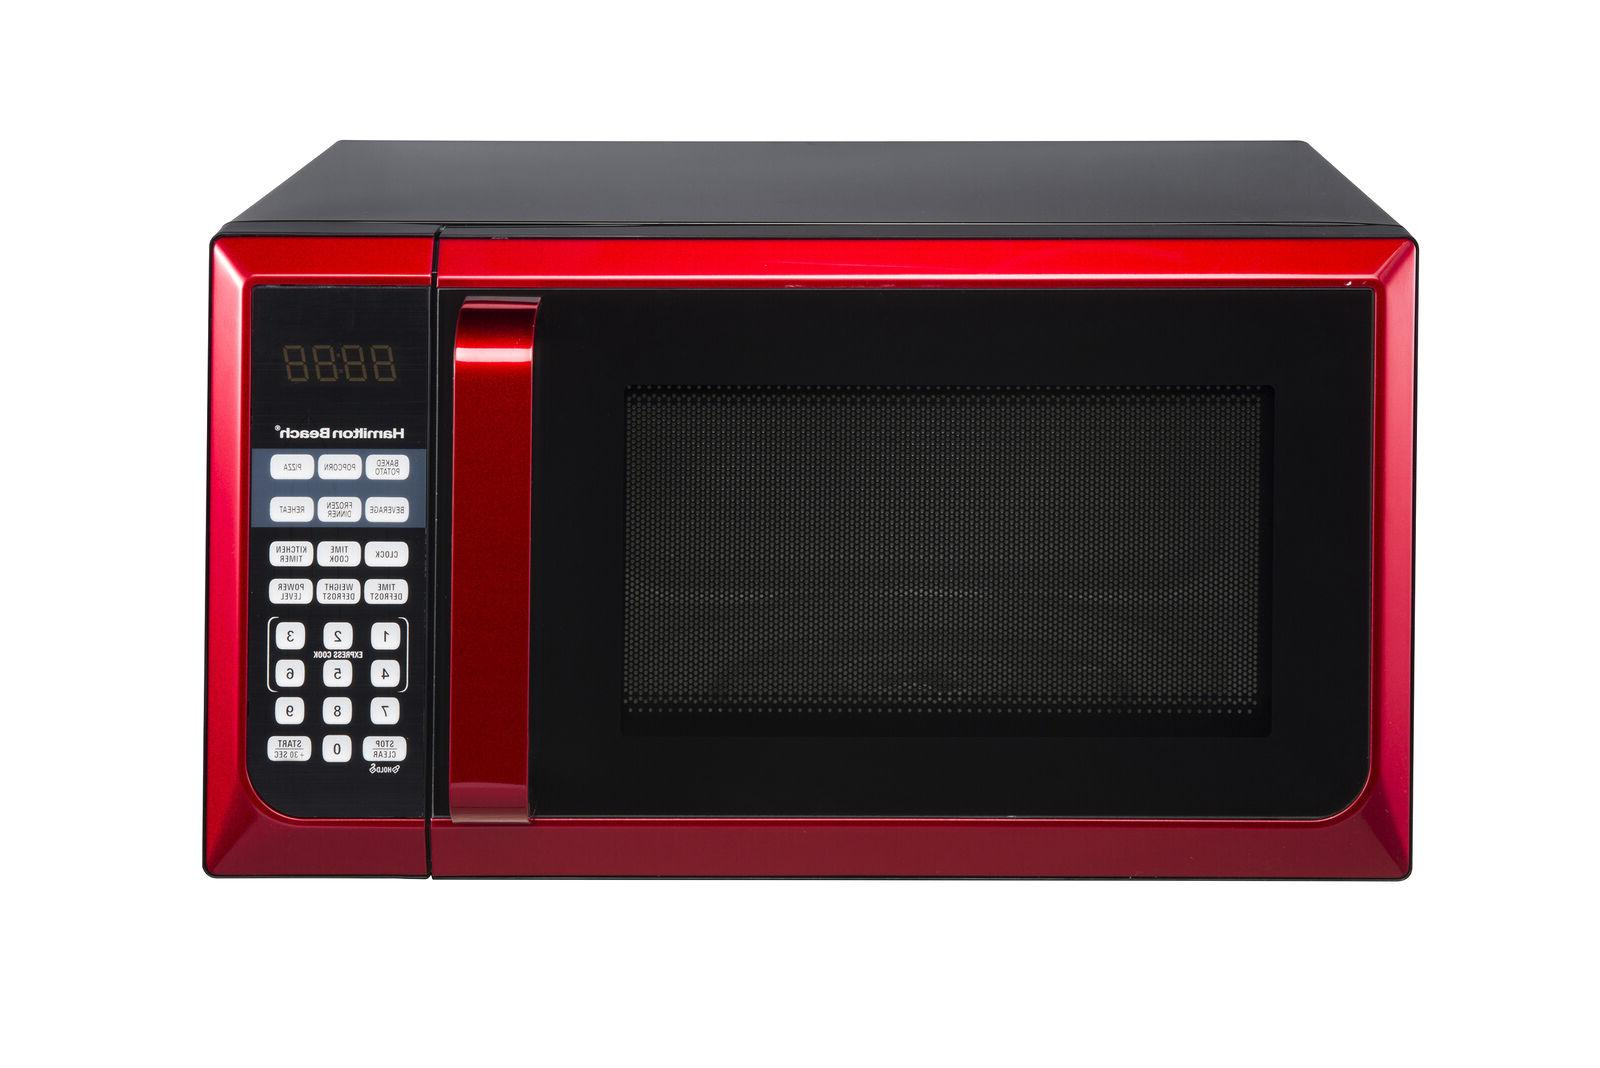 Microwave Oven Dorm Room Modern touch-pad Red Stainless Stee